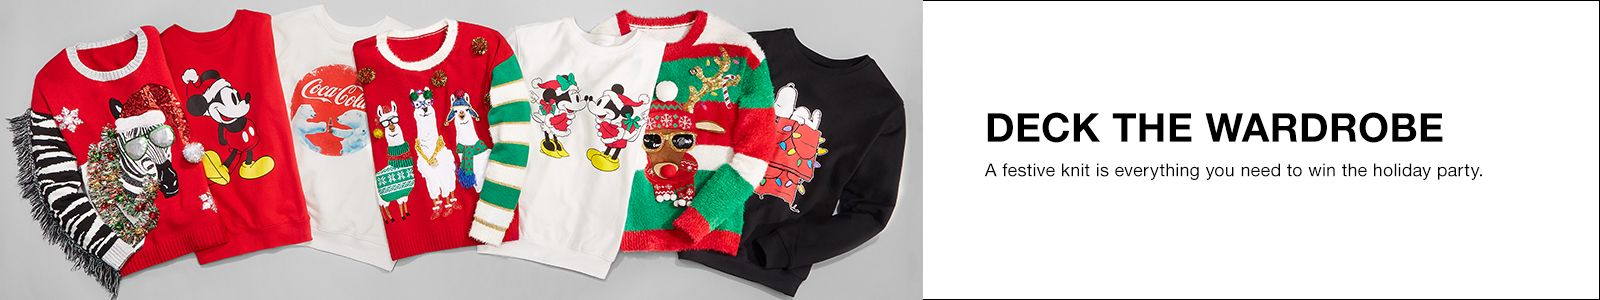 Deck The Wardrobe, a festive knit is everything you need to win the holiday party